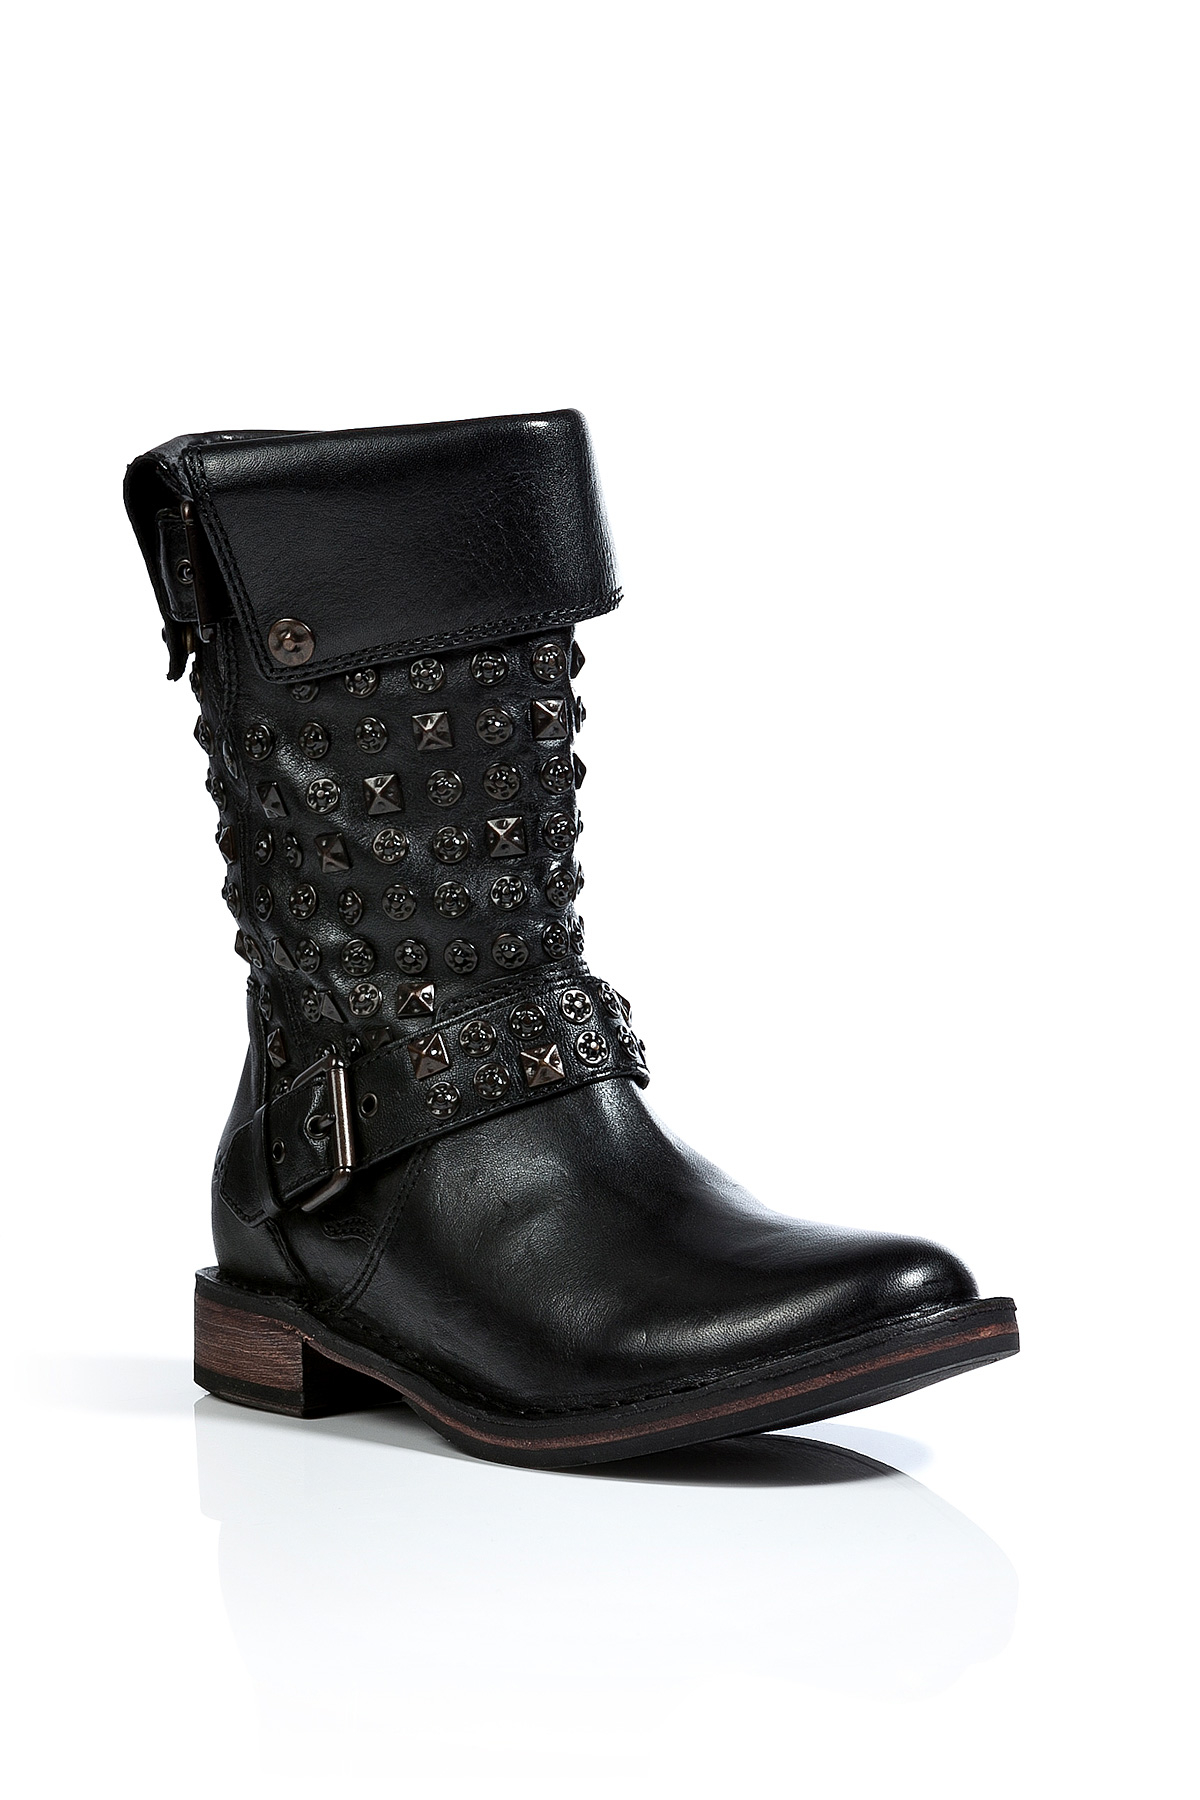 Lyst Ugg Leather Conor Studded Boots In Black In Black